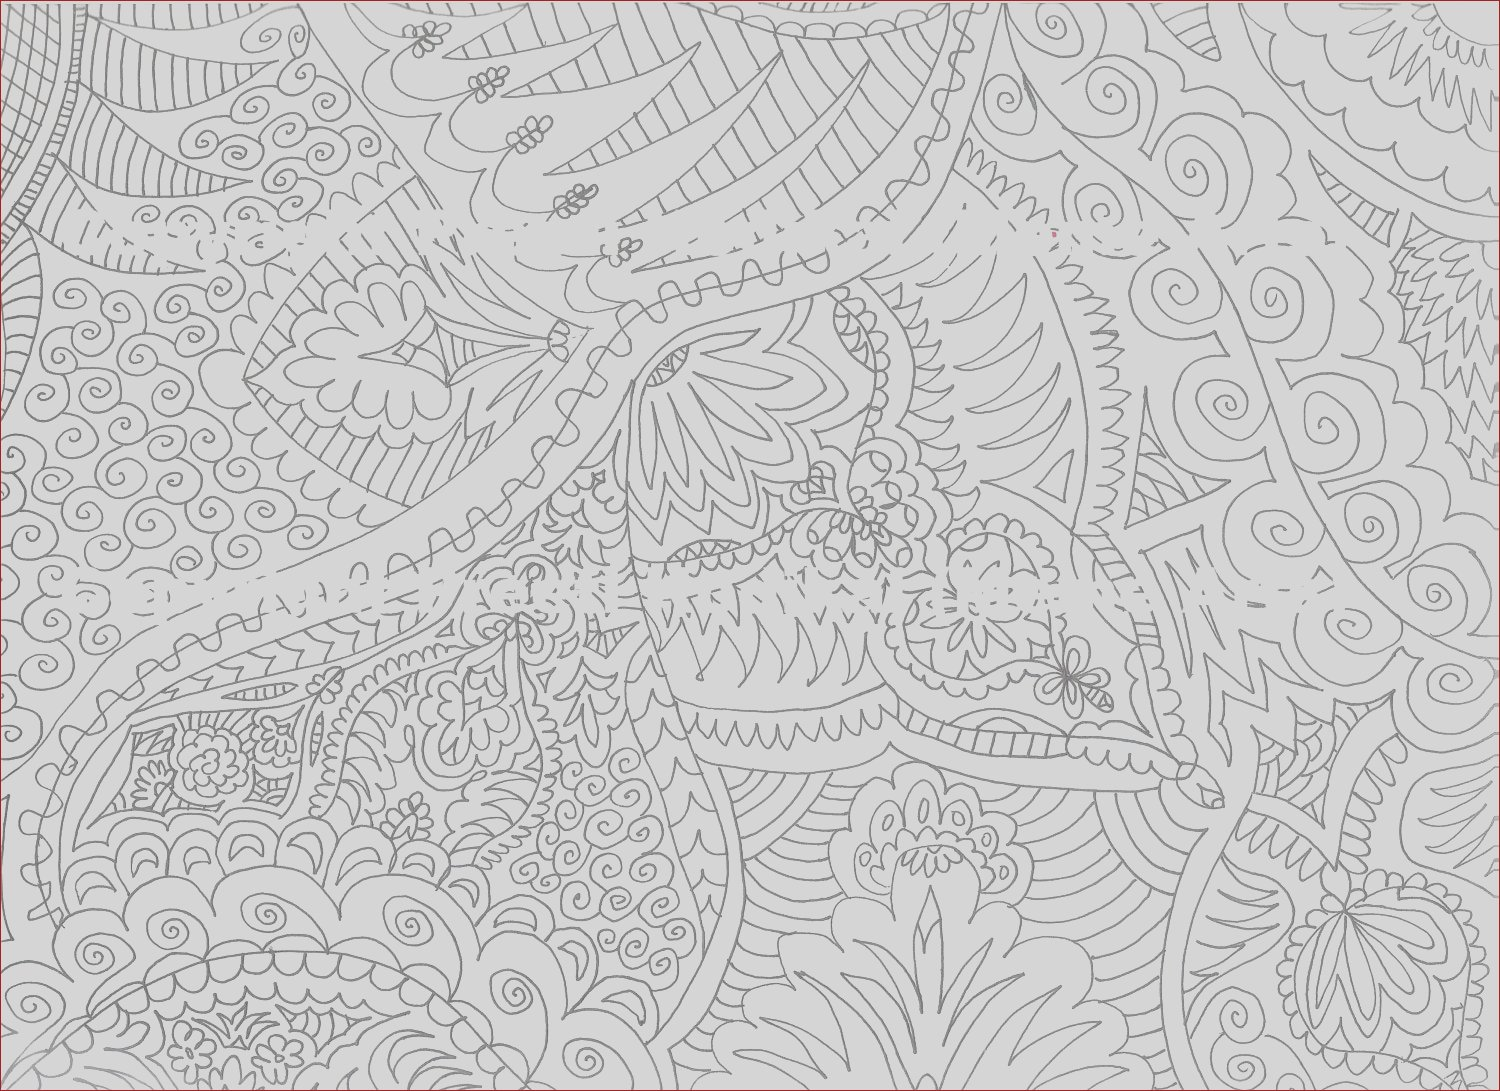 pen illustration printable coloring page